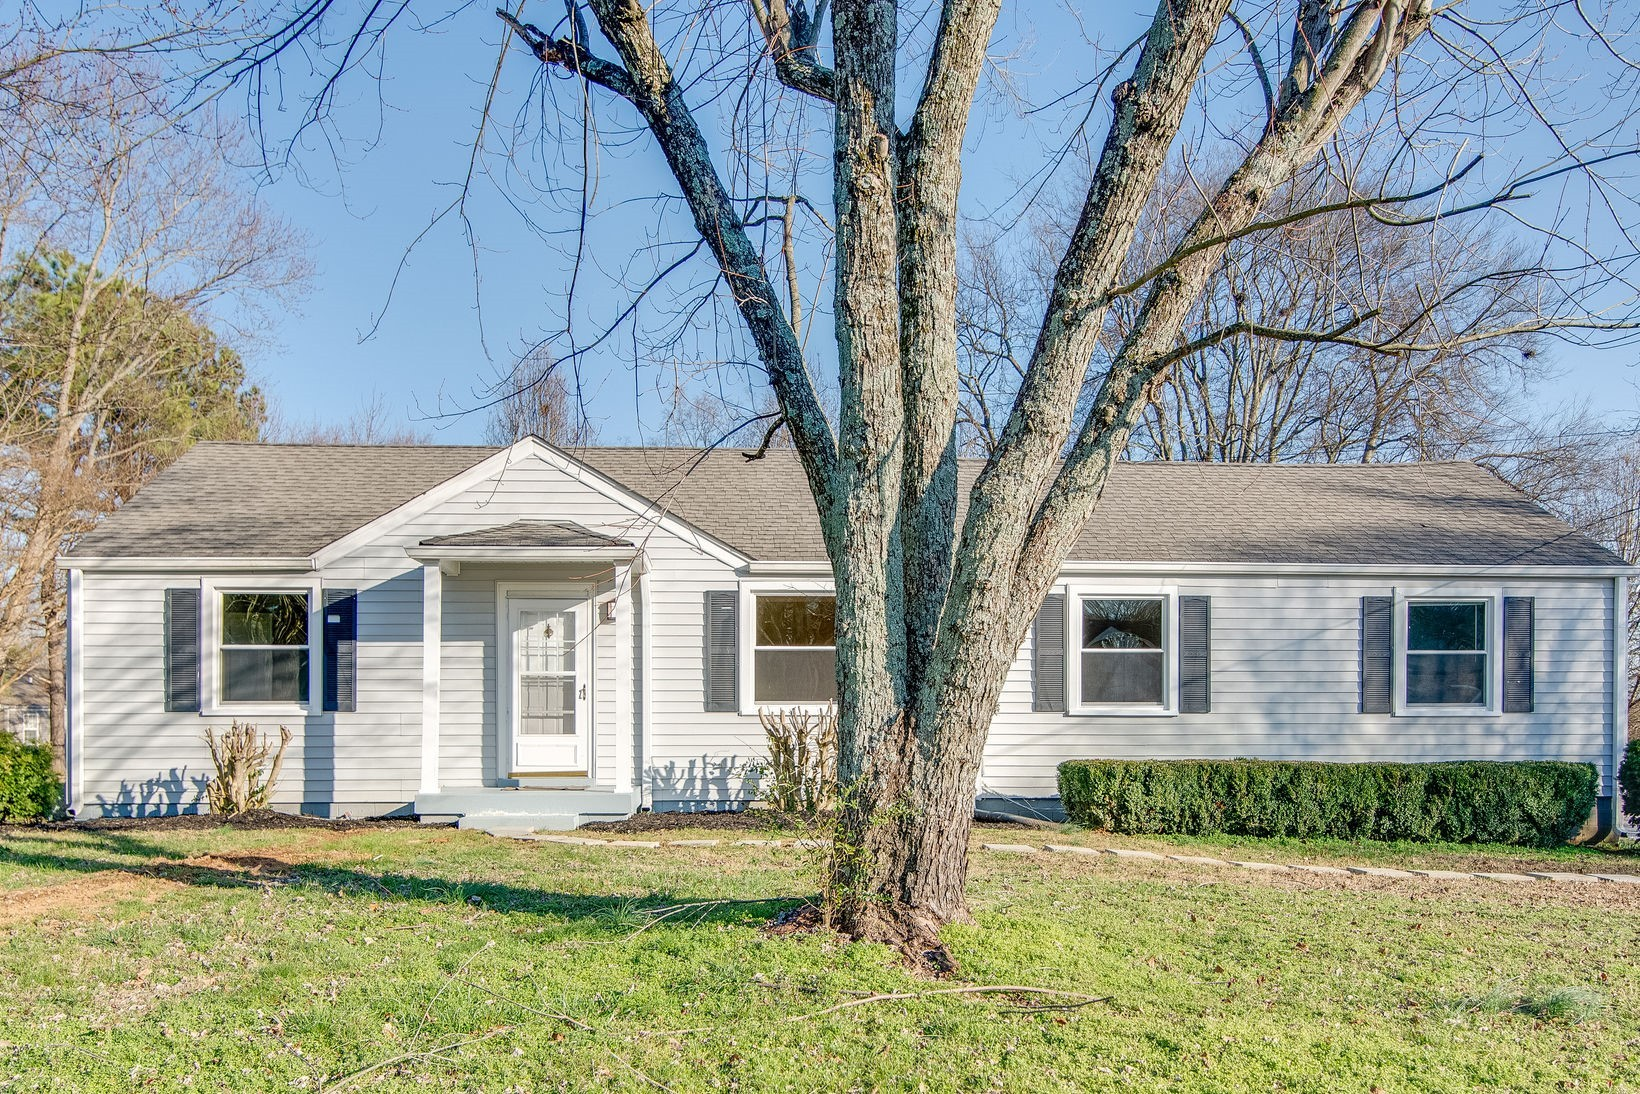 Professionally Renovated Ranch With Lovely Oak Hardwoods And Covered Deck, Level Lot!  111 Gibson Dr., Madison, TN.  37115